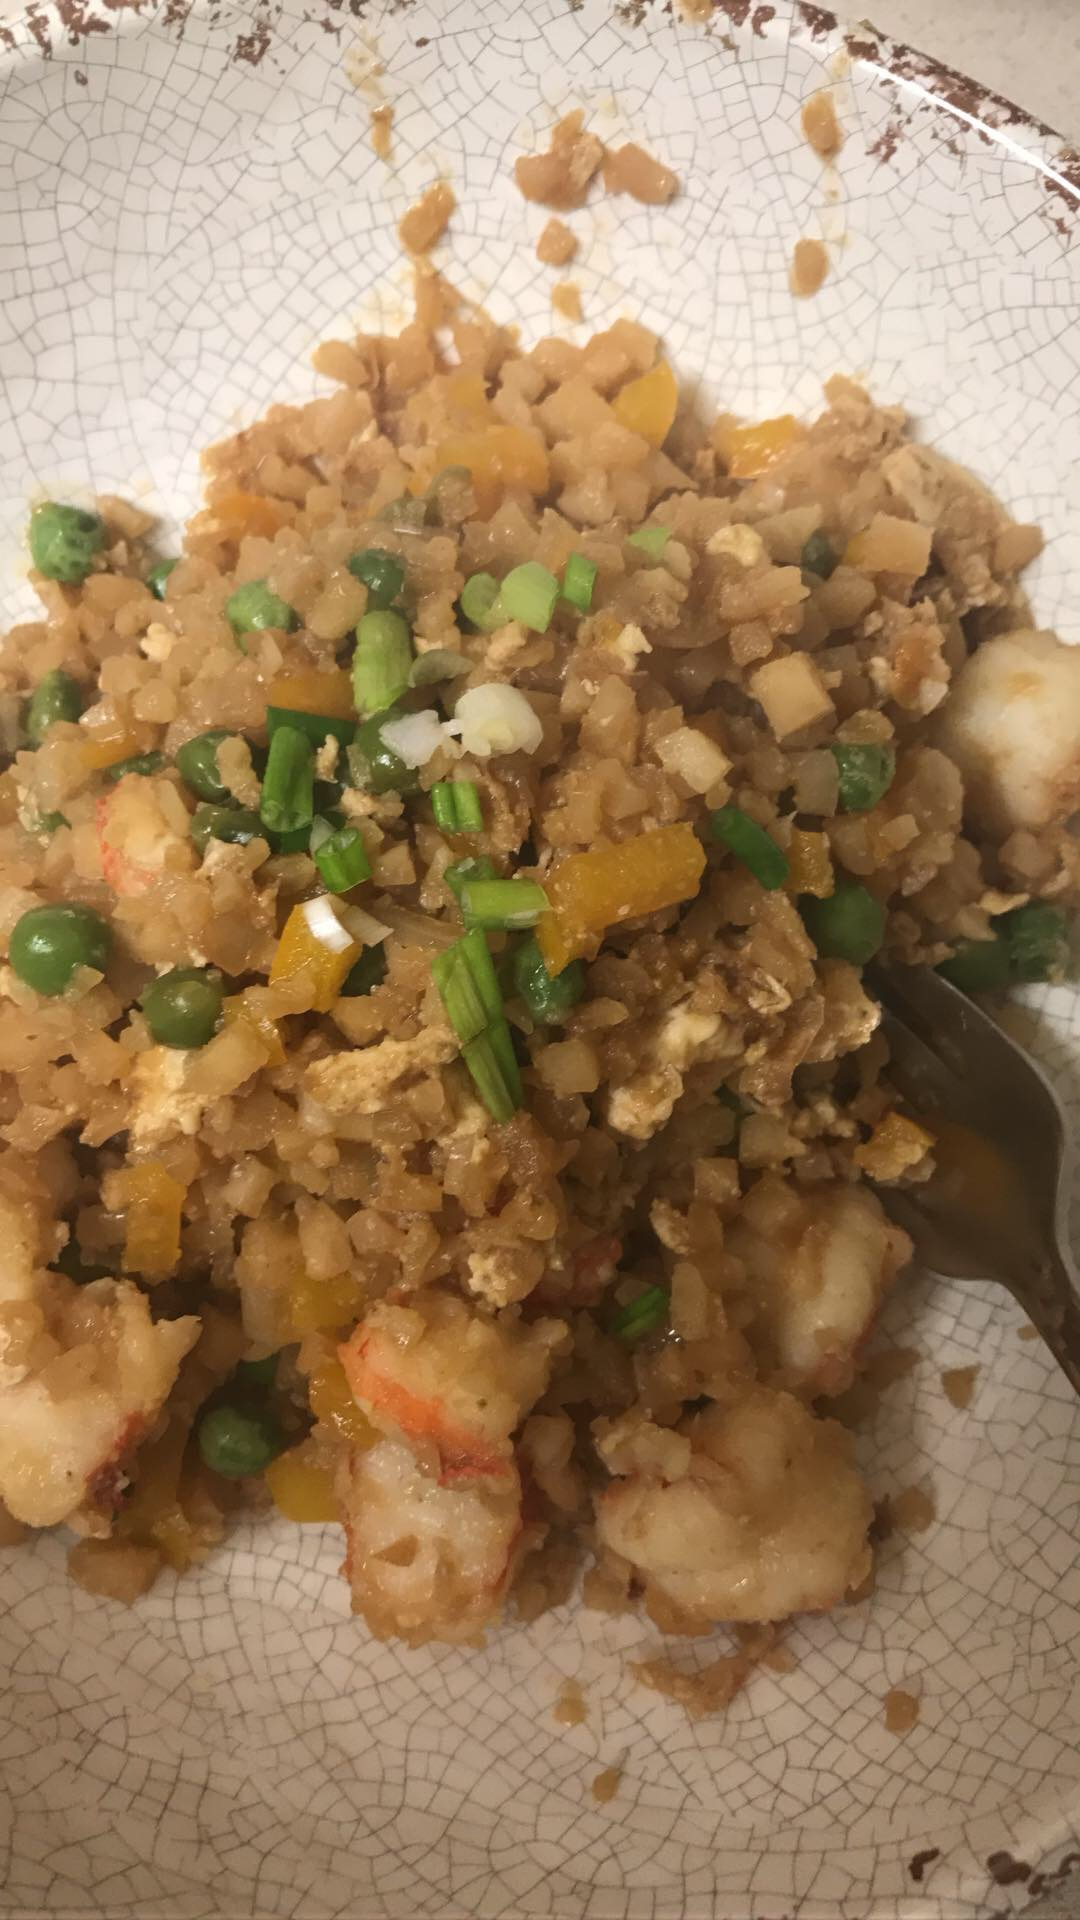 Shrimp Fried Cauliflower Rice - Meal Planning + What We Ate Last Week - Communikait by Kait Hanson